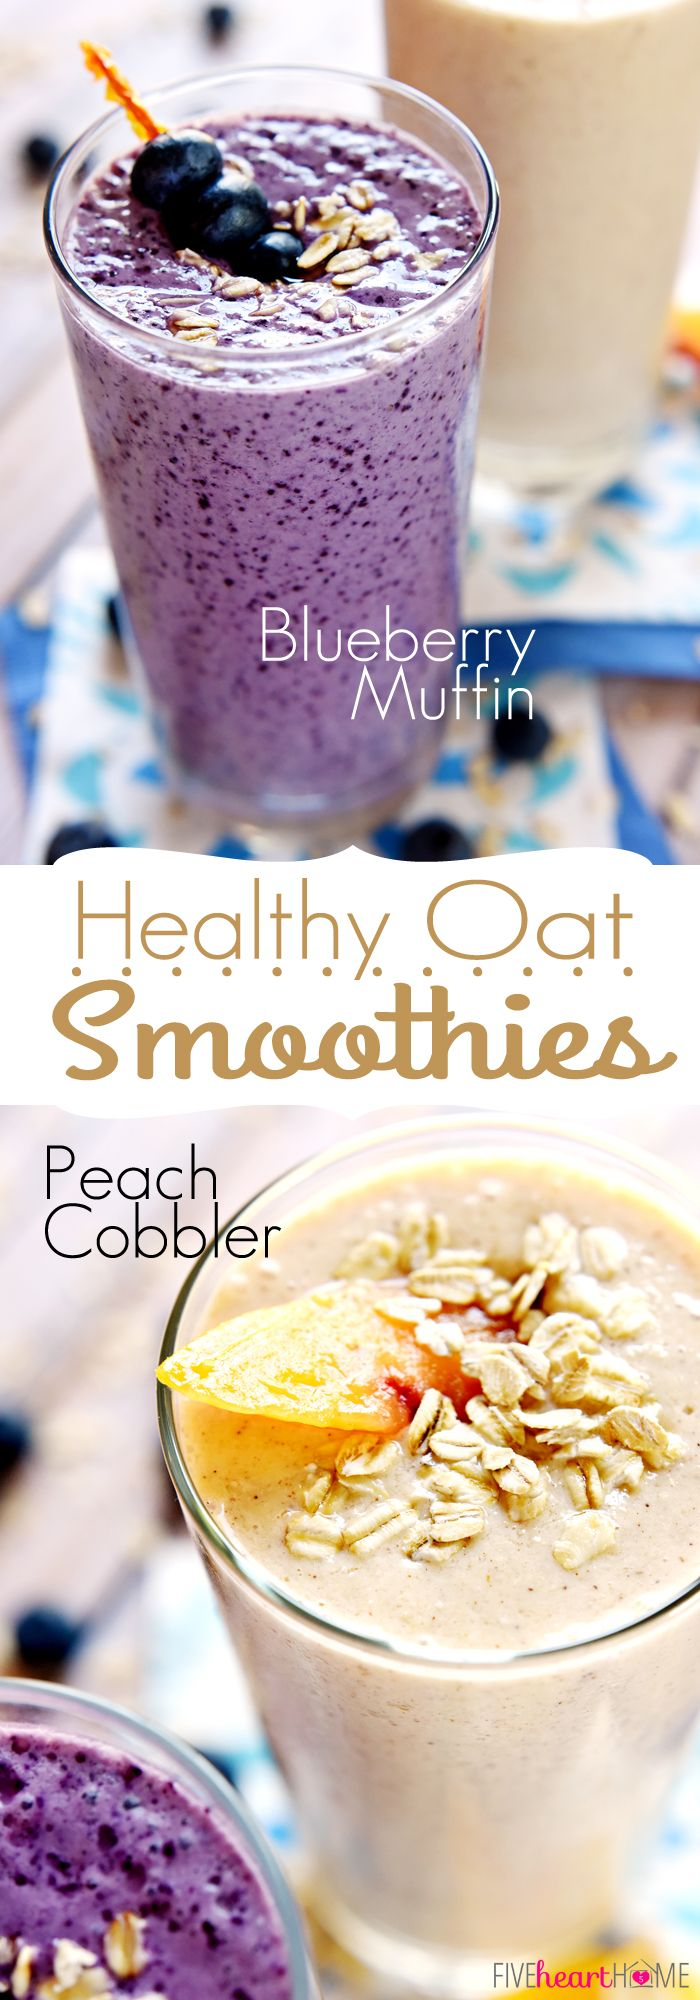 Healthy Oat Smoothies ~ Blueberry Muffin & Peach Cobbler Flavors #fruitsmoothie